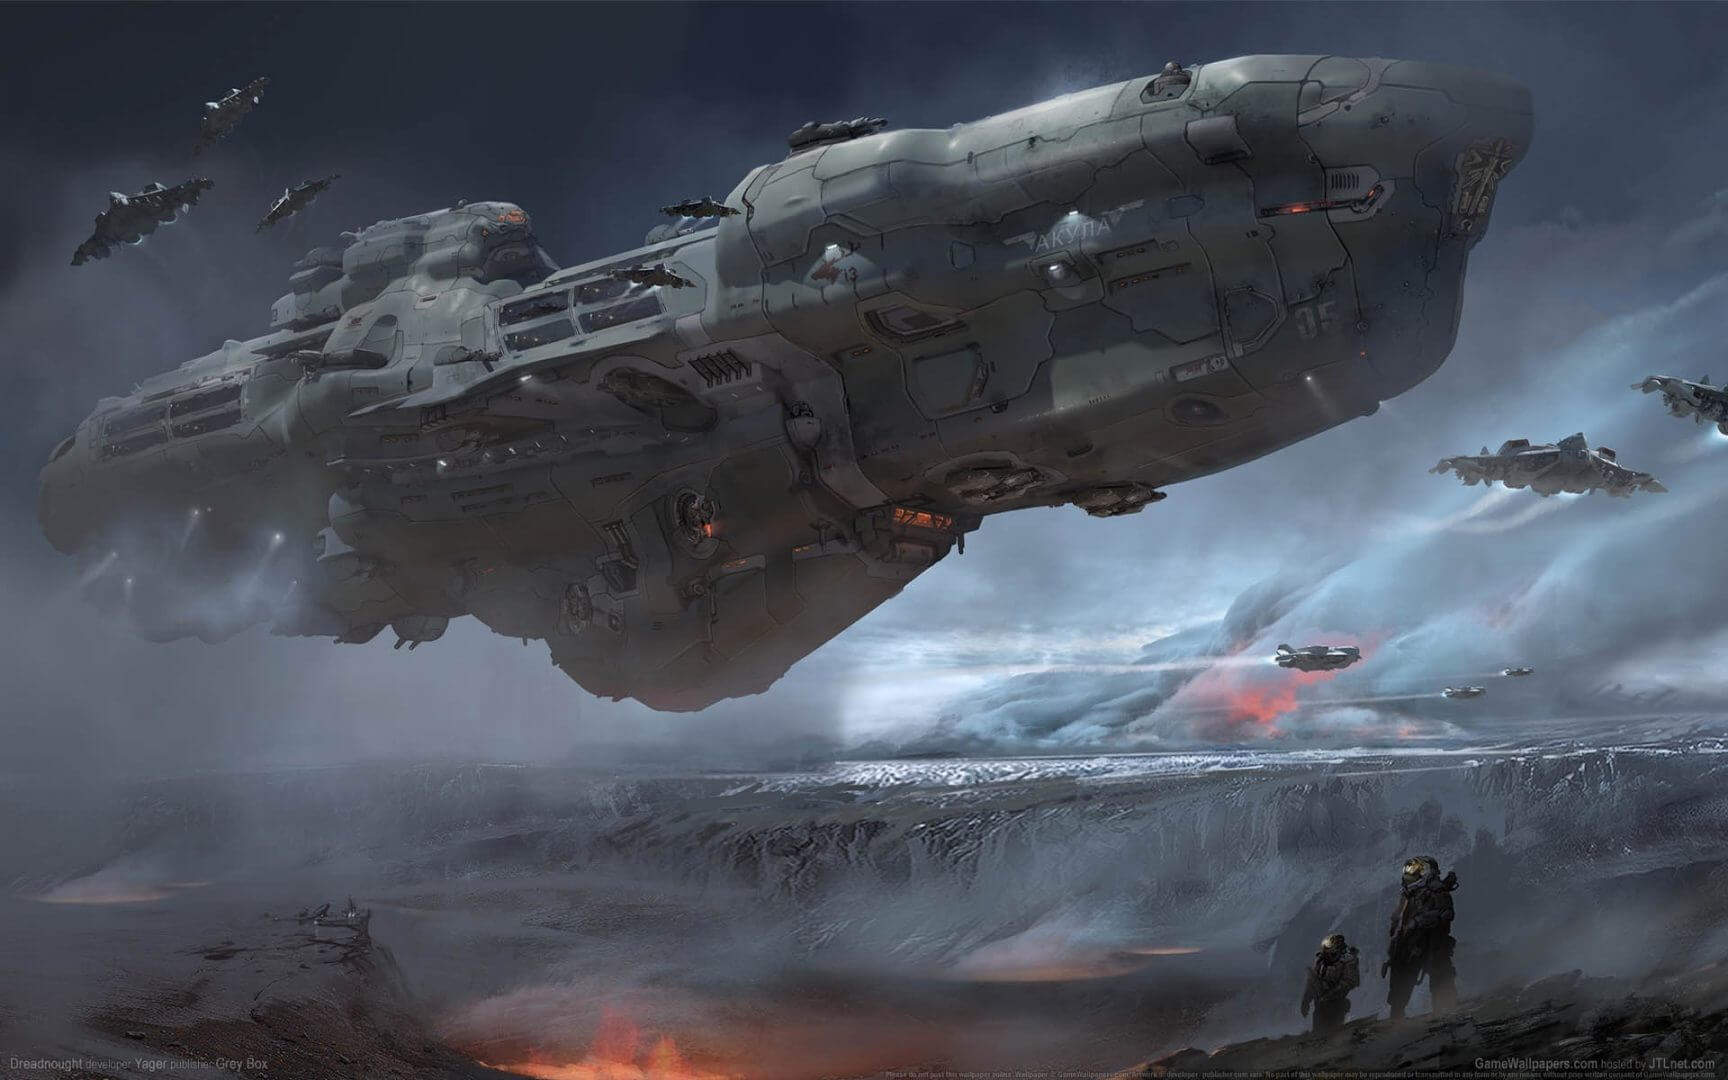 Preview: Epic Space Combat Game Dreadnought